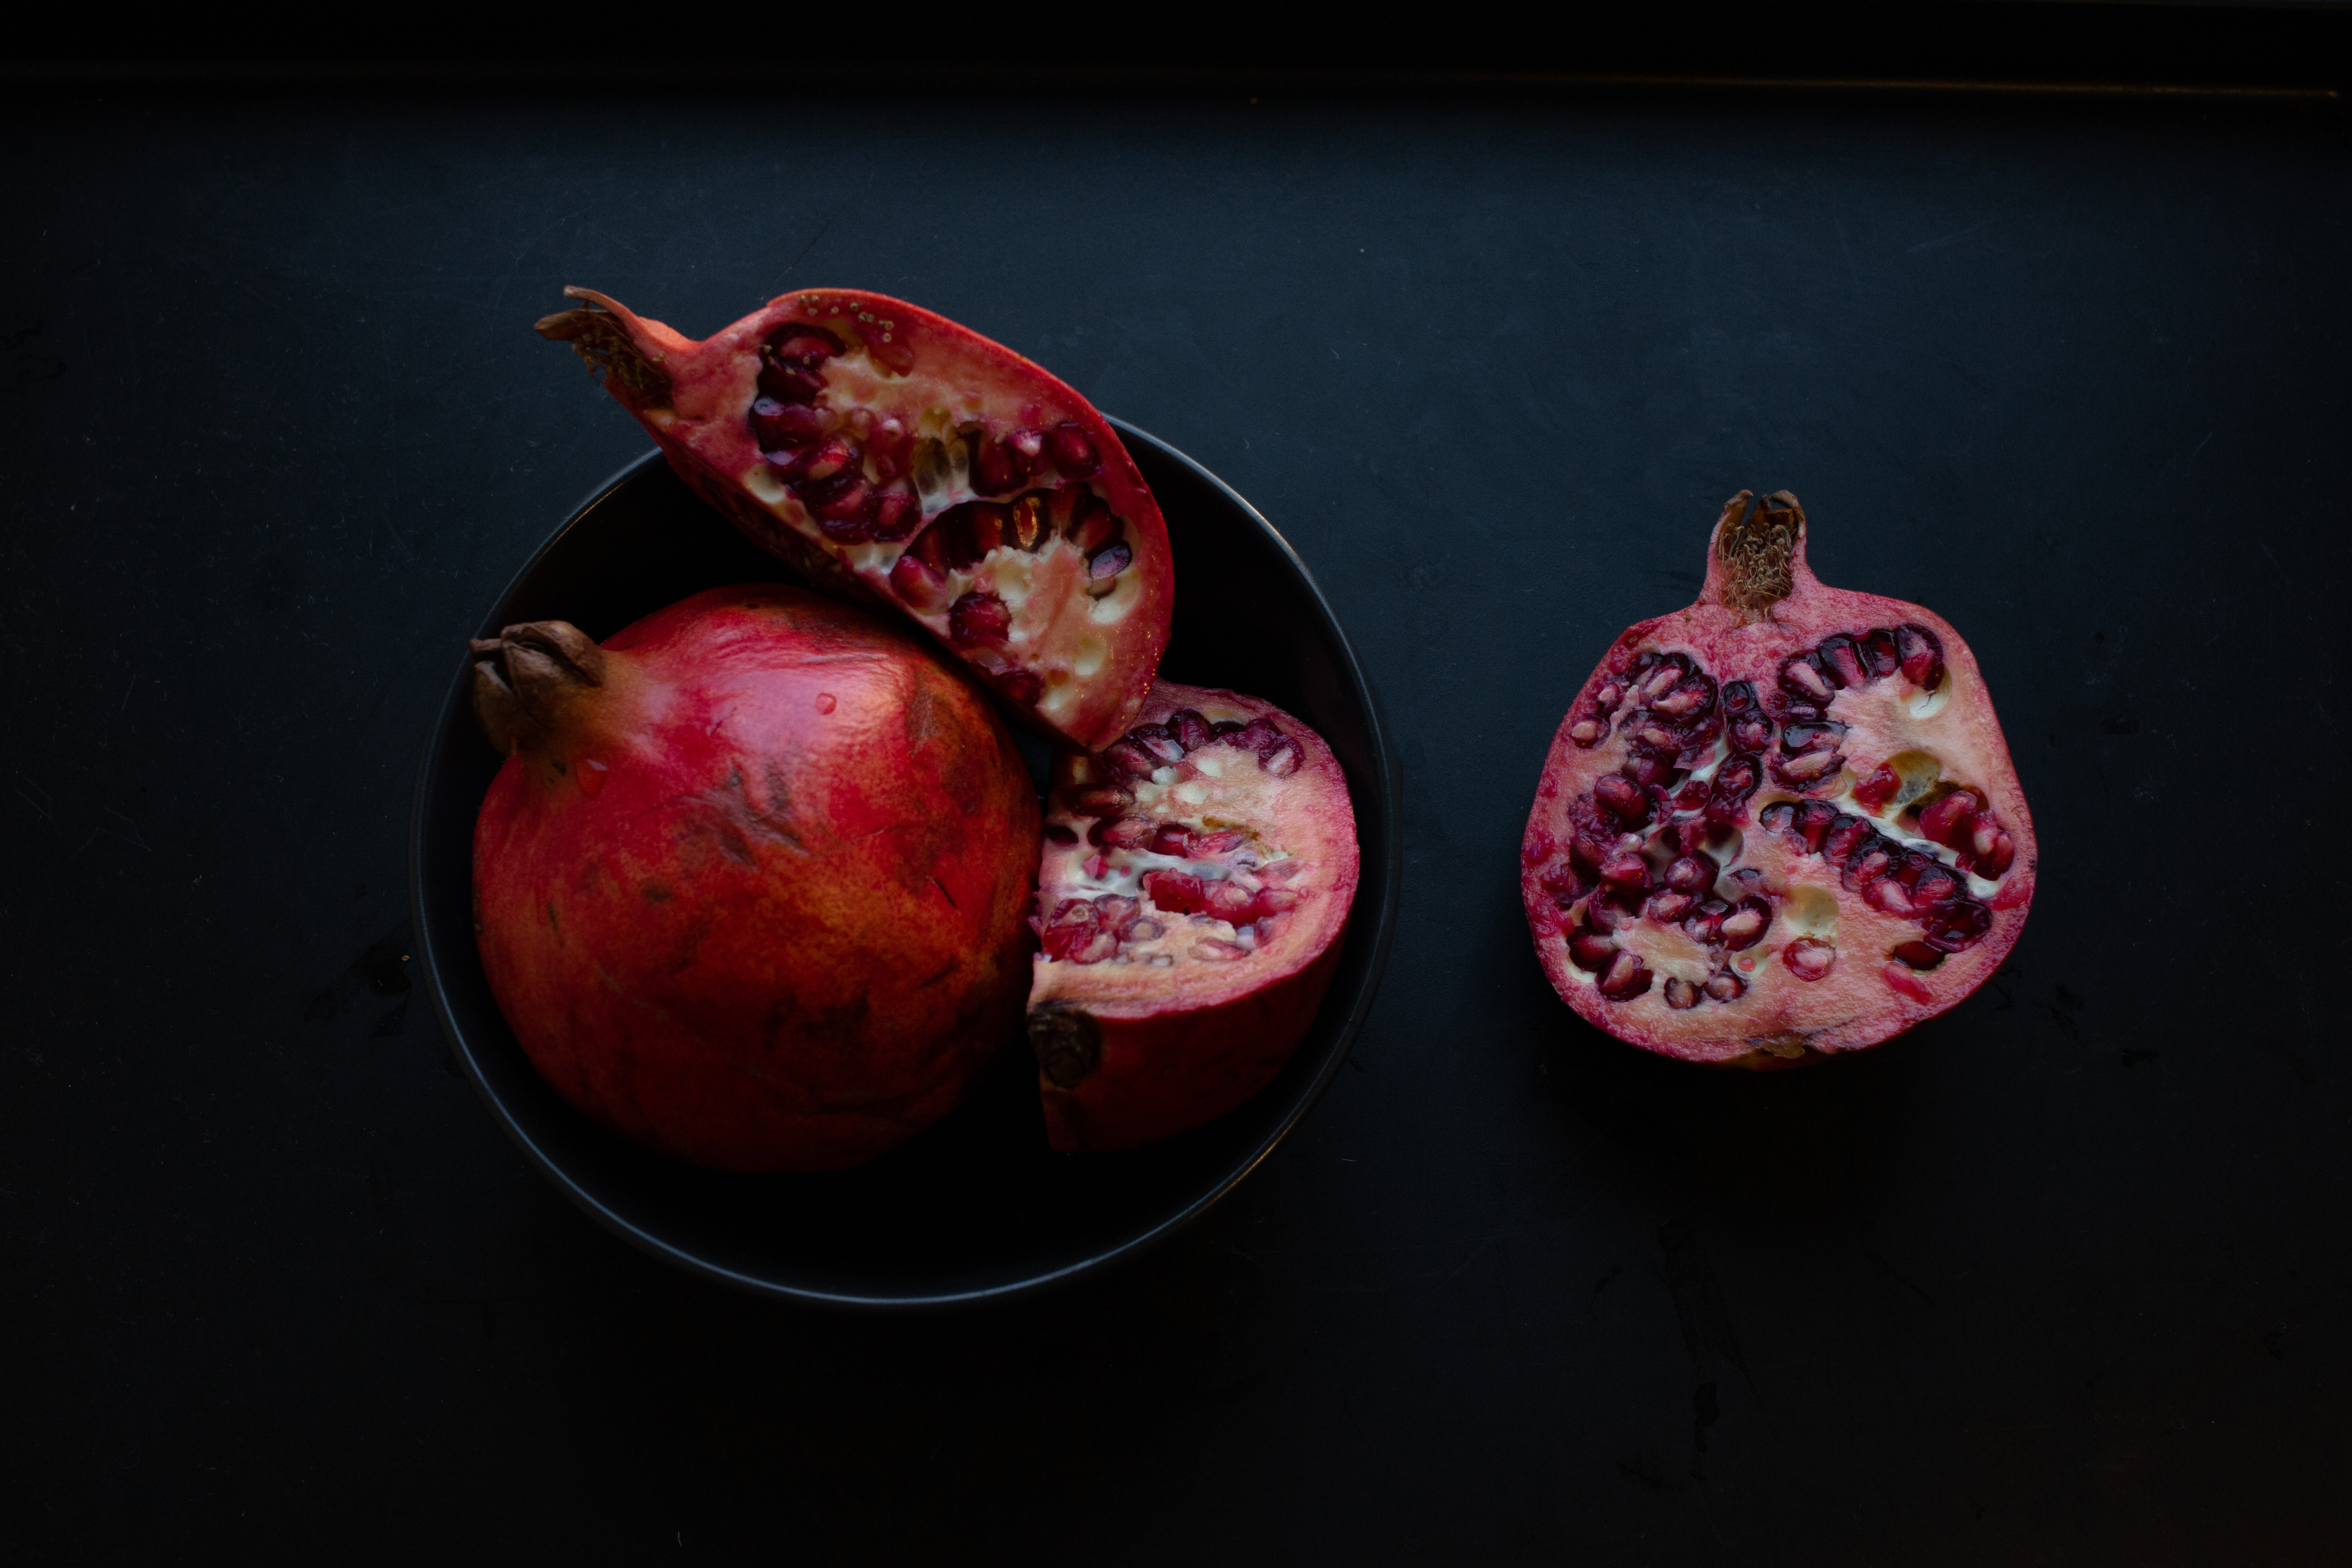 two red pomegranate fruits on black surface